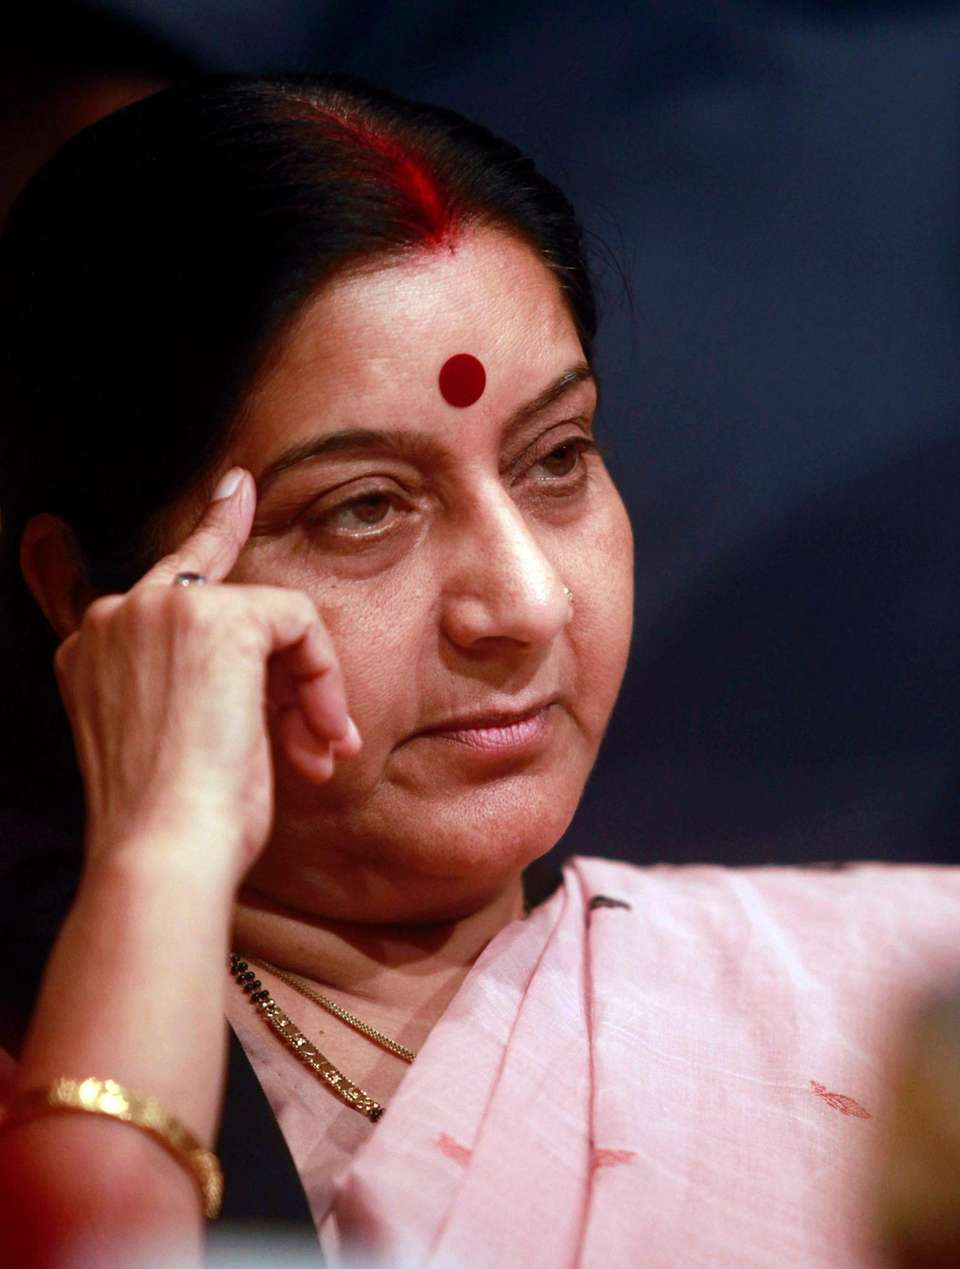 Sushma Swaraj, India's former external affairs minister and